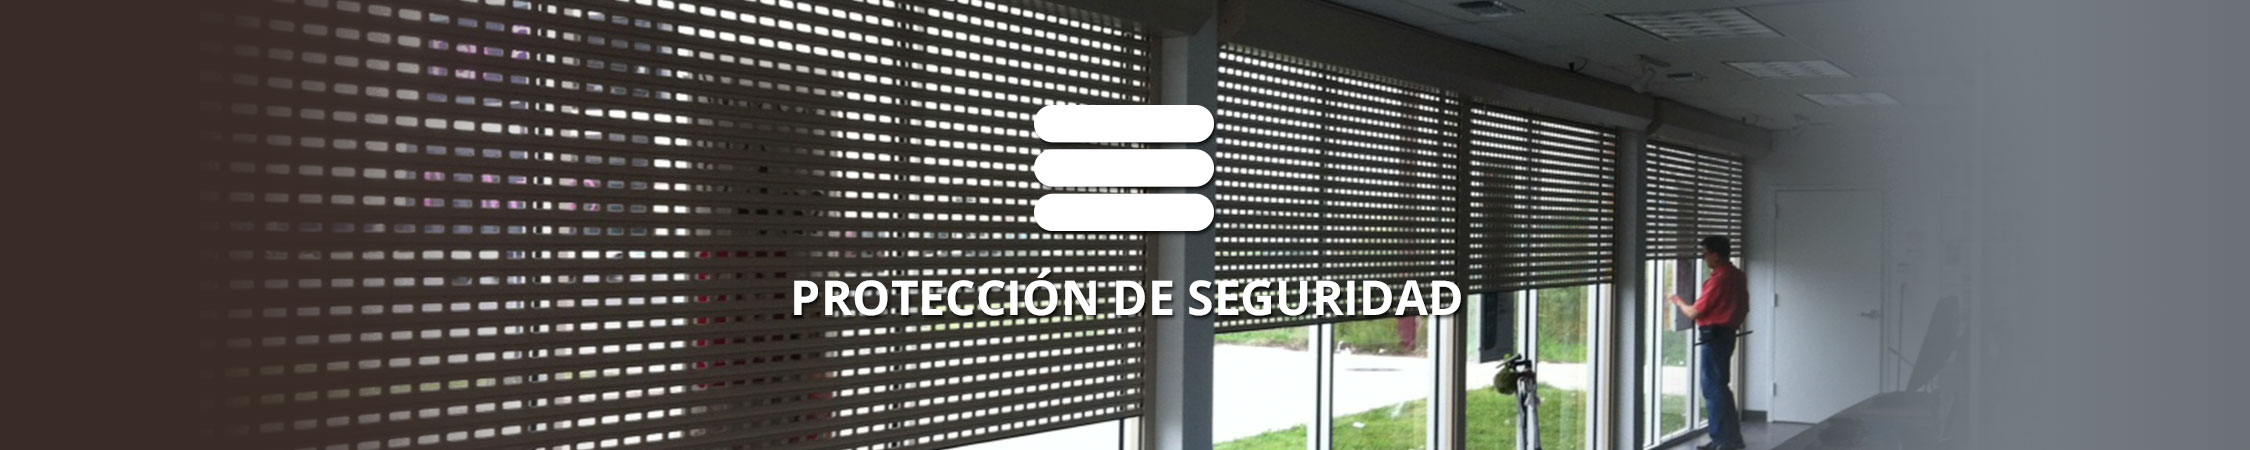 Proteccion de Seguridad - Rolltex Shutters